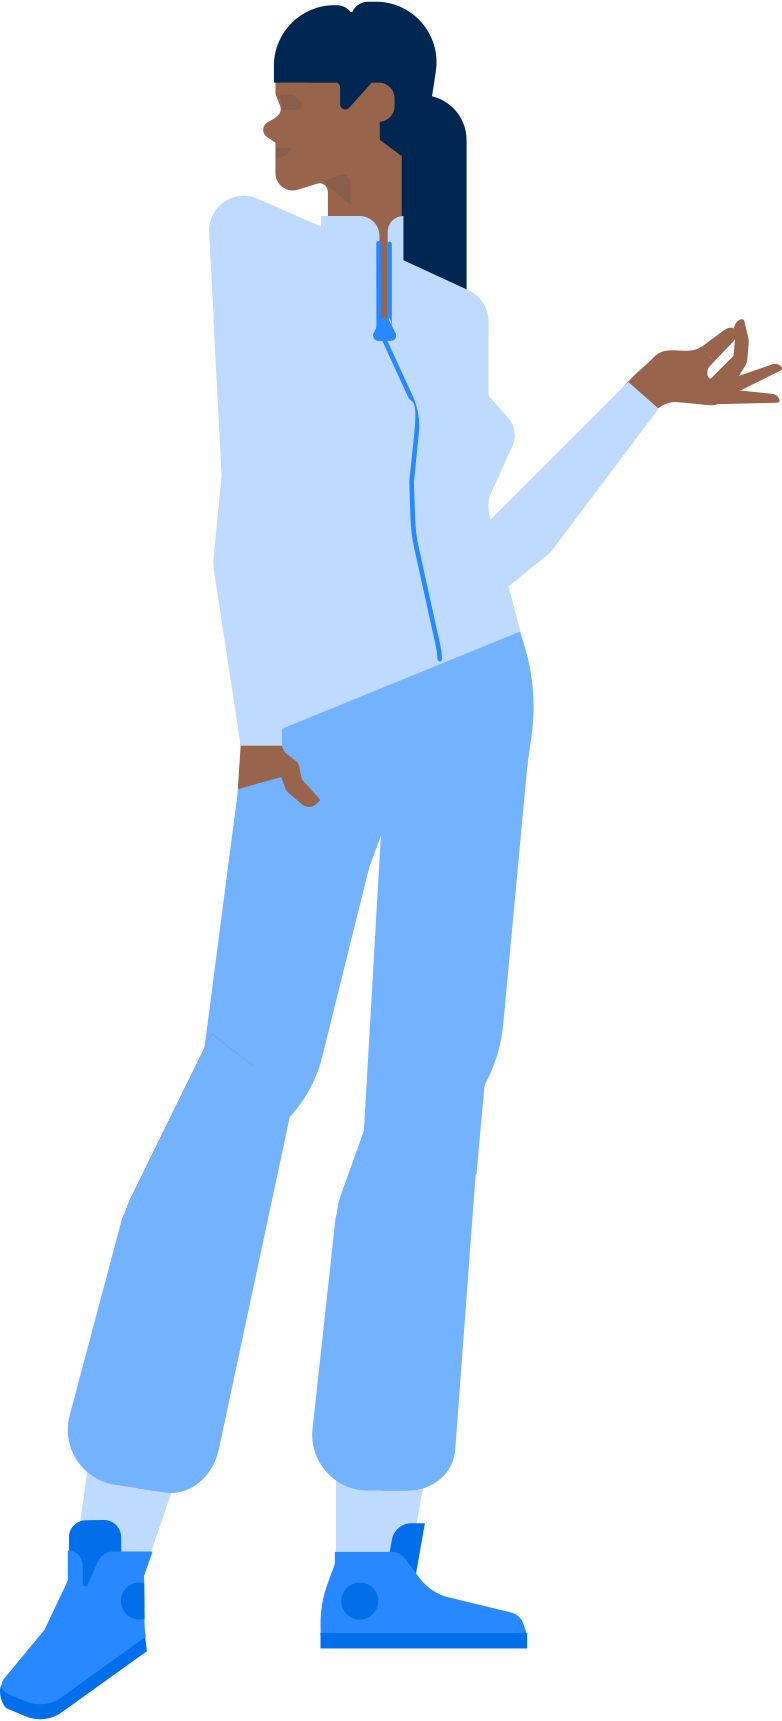 style woman holding something Vector images in PNG and SVG | Icons8 Illustrations